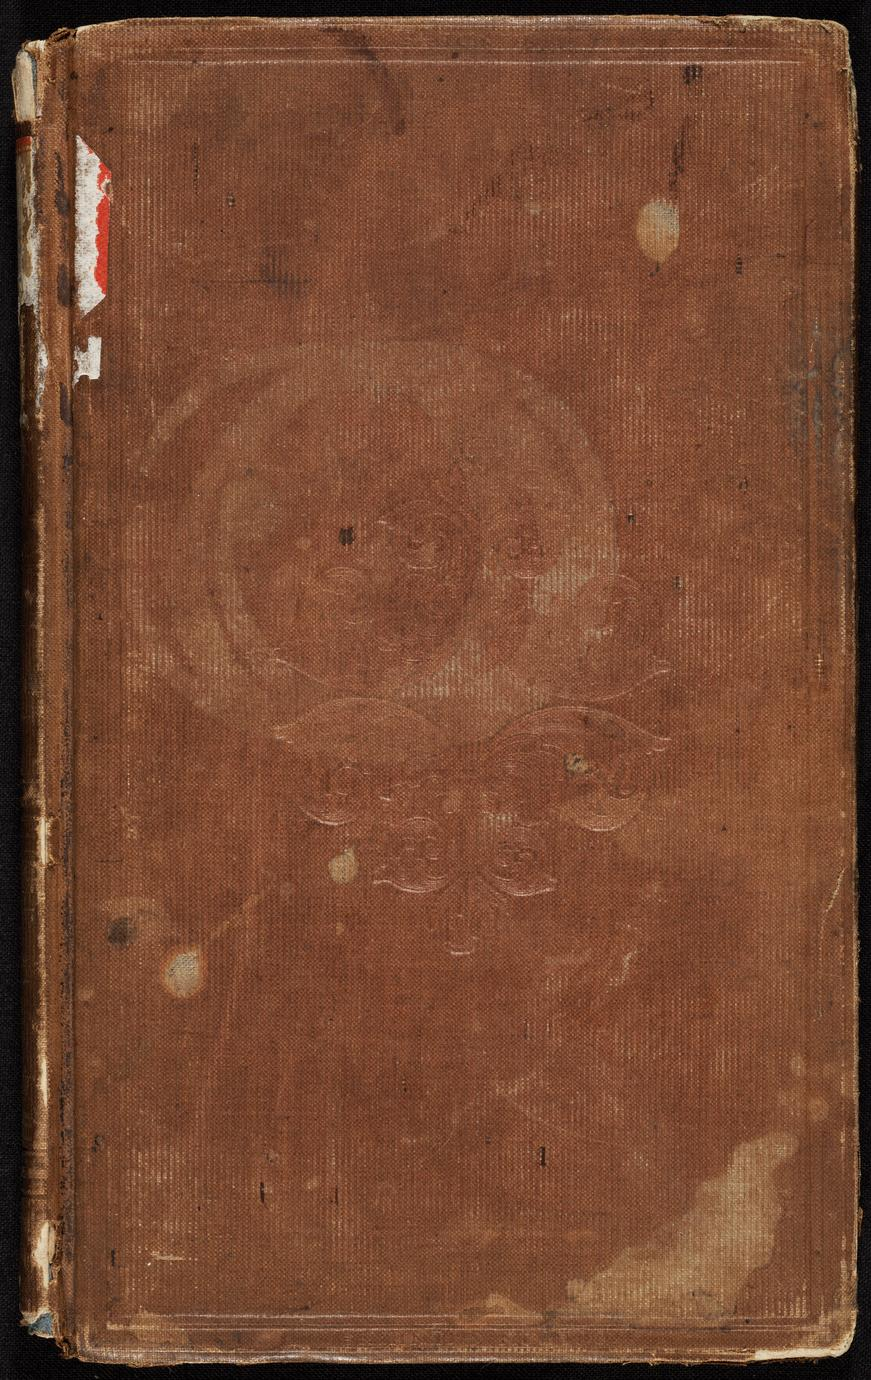 A winter in the West Indies and Florida : containing general observations upon modes of travelling, manners and customs, climates and productions, with a particular description of St. Croix, Trinidad de Cuba, Havana, Key West, and St. Augustine, as places of resort for northern invalids (1 of 2)